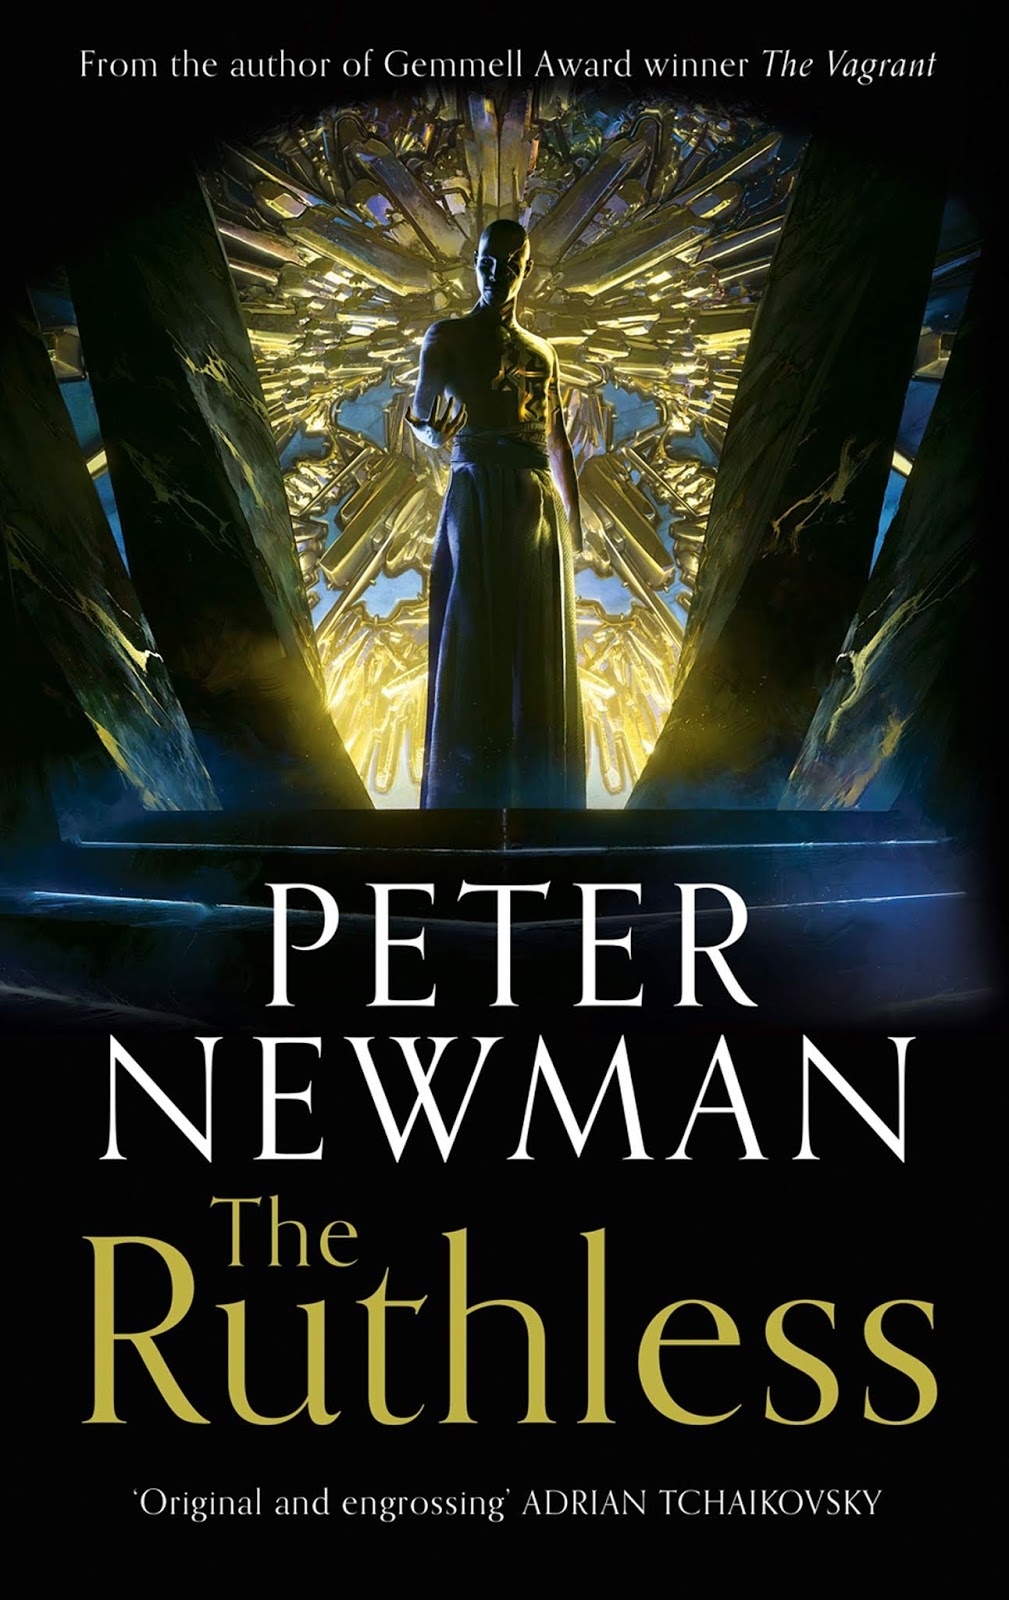 The Ruthless by Peter Newman